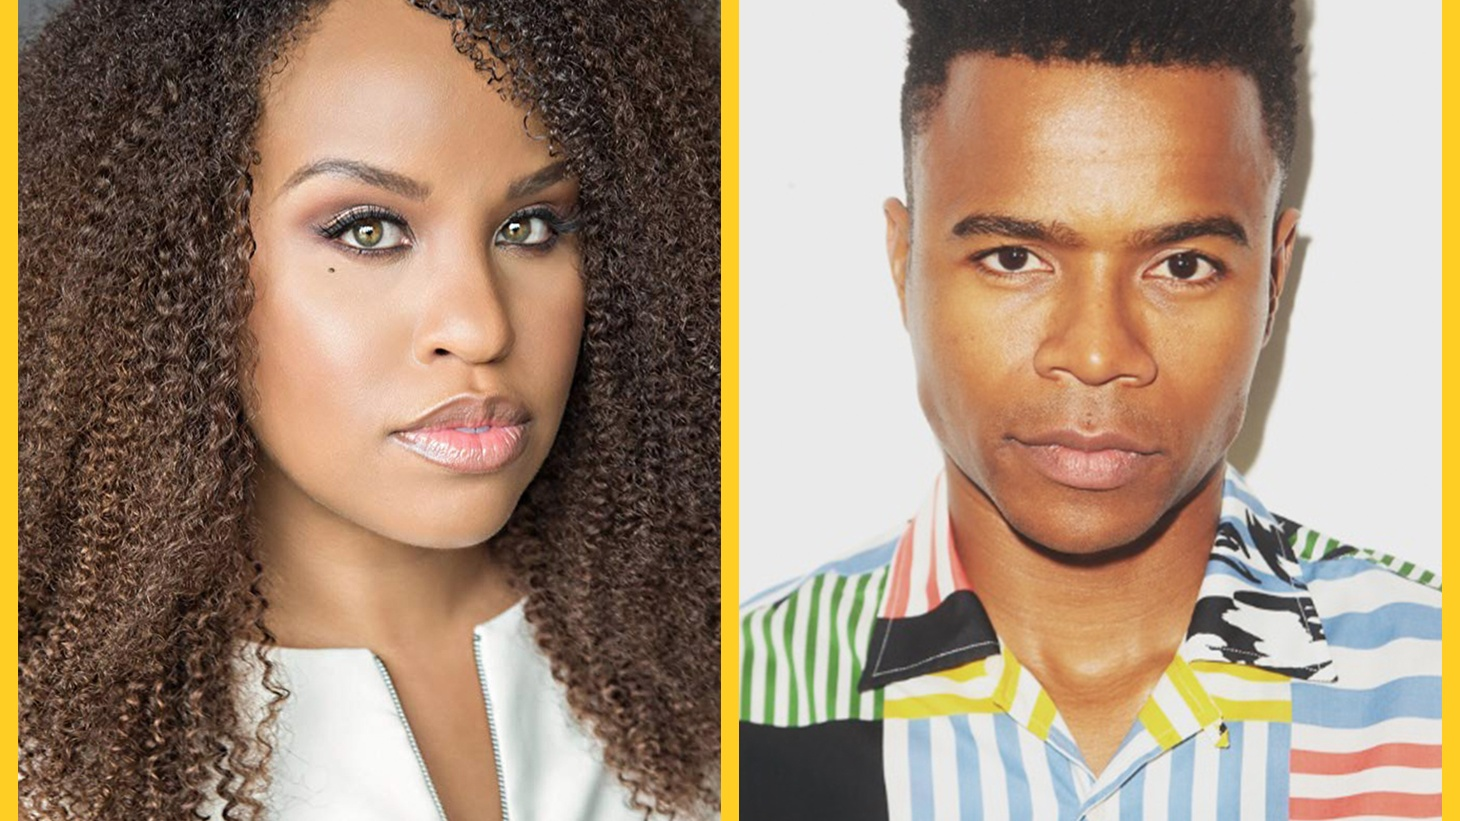 Actors Marque Richardson and Kellee Stewart digest the new documentary, Whitney, which explores the complicated life of Whitney Houston. Plus, how Marque and Kellee learned to inhabit people's lives in their characters.